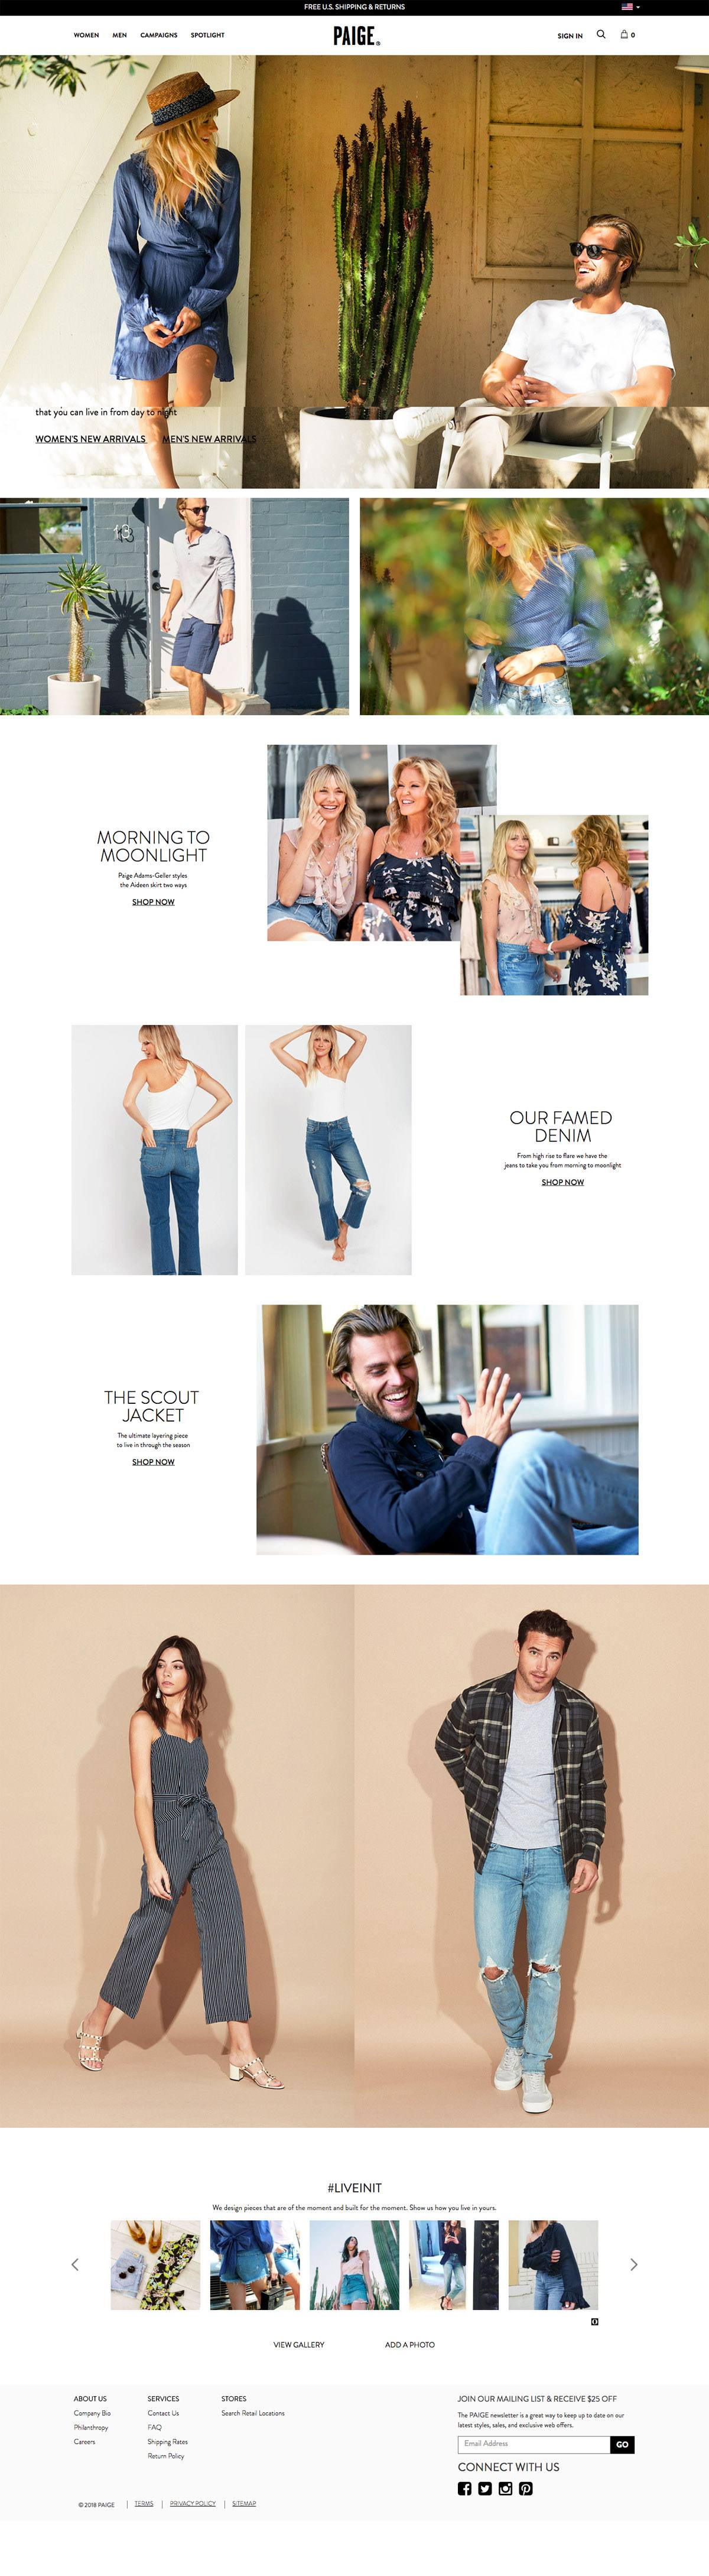 eCommerce website: PAIGE